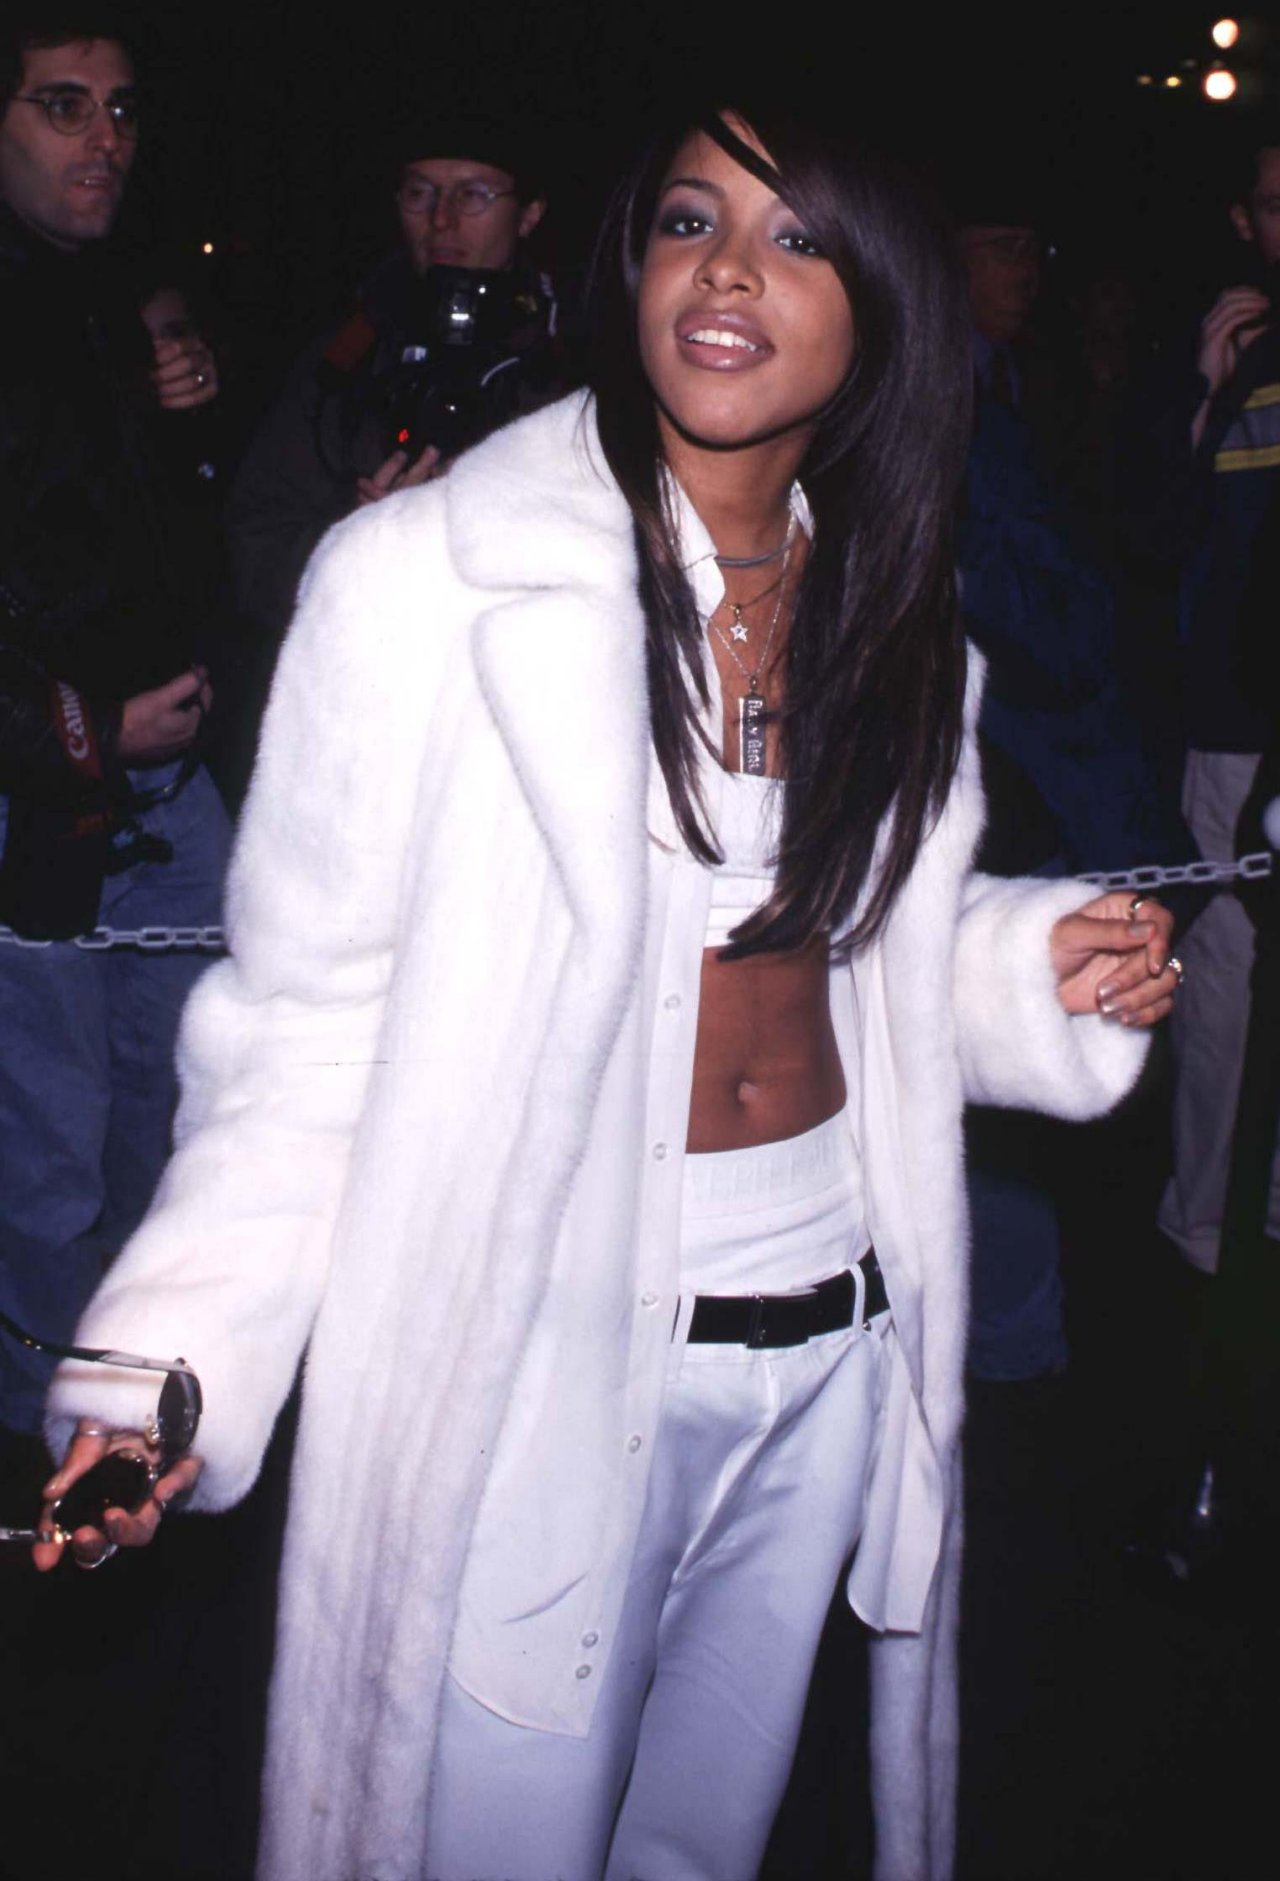 Aaliyah-aaliyah-137632_1280_1881.jpg